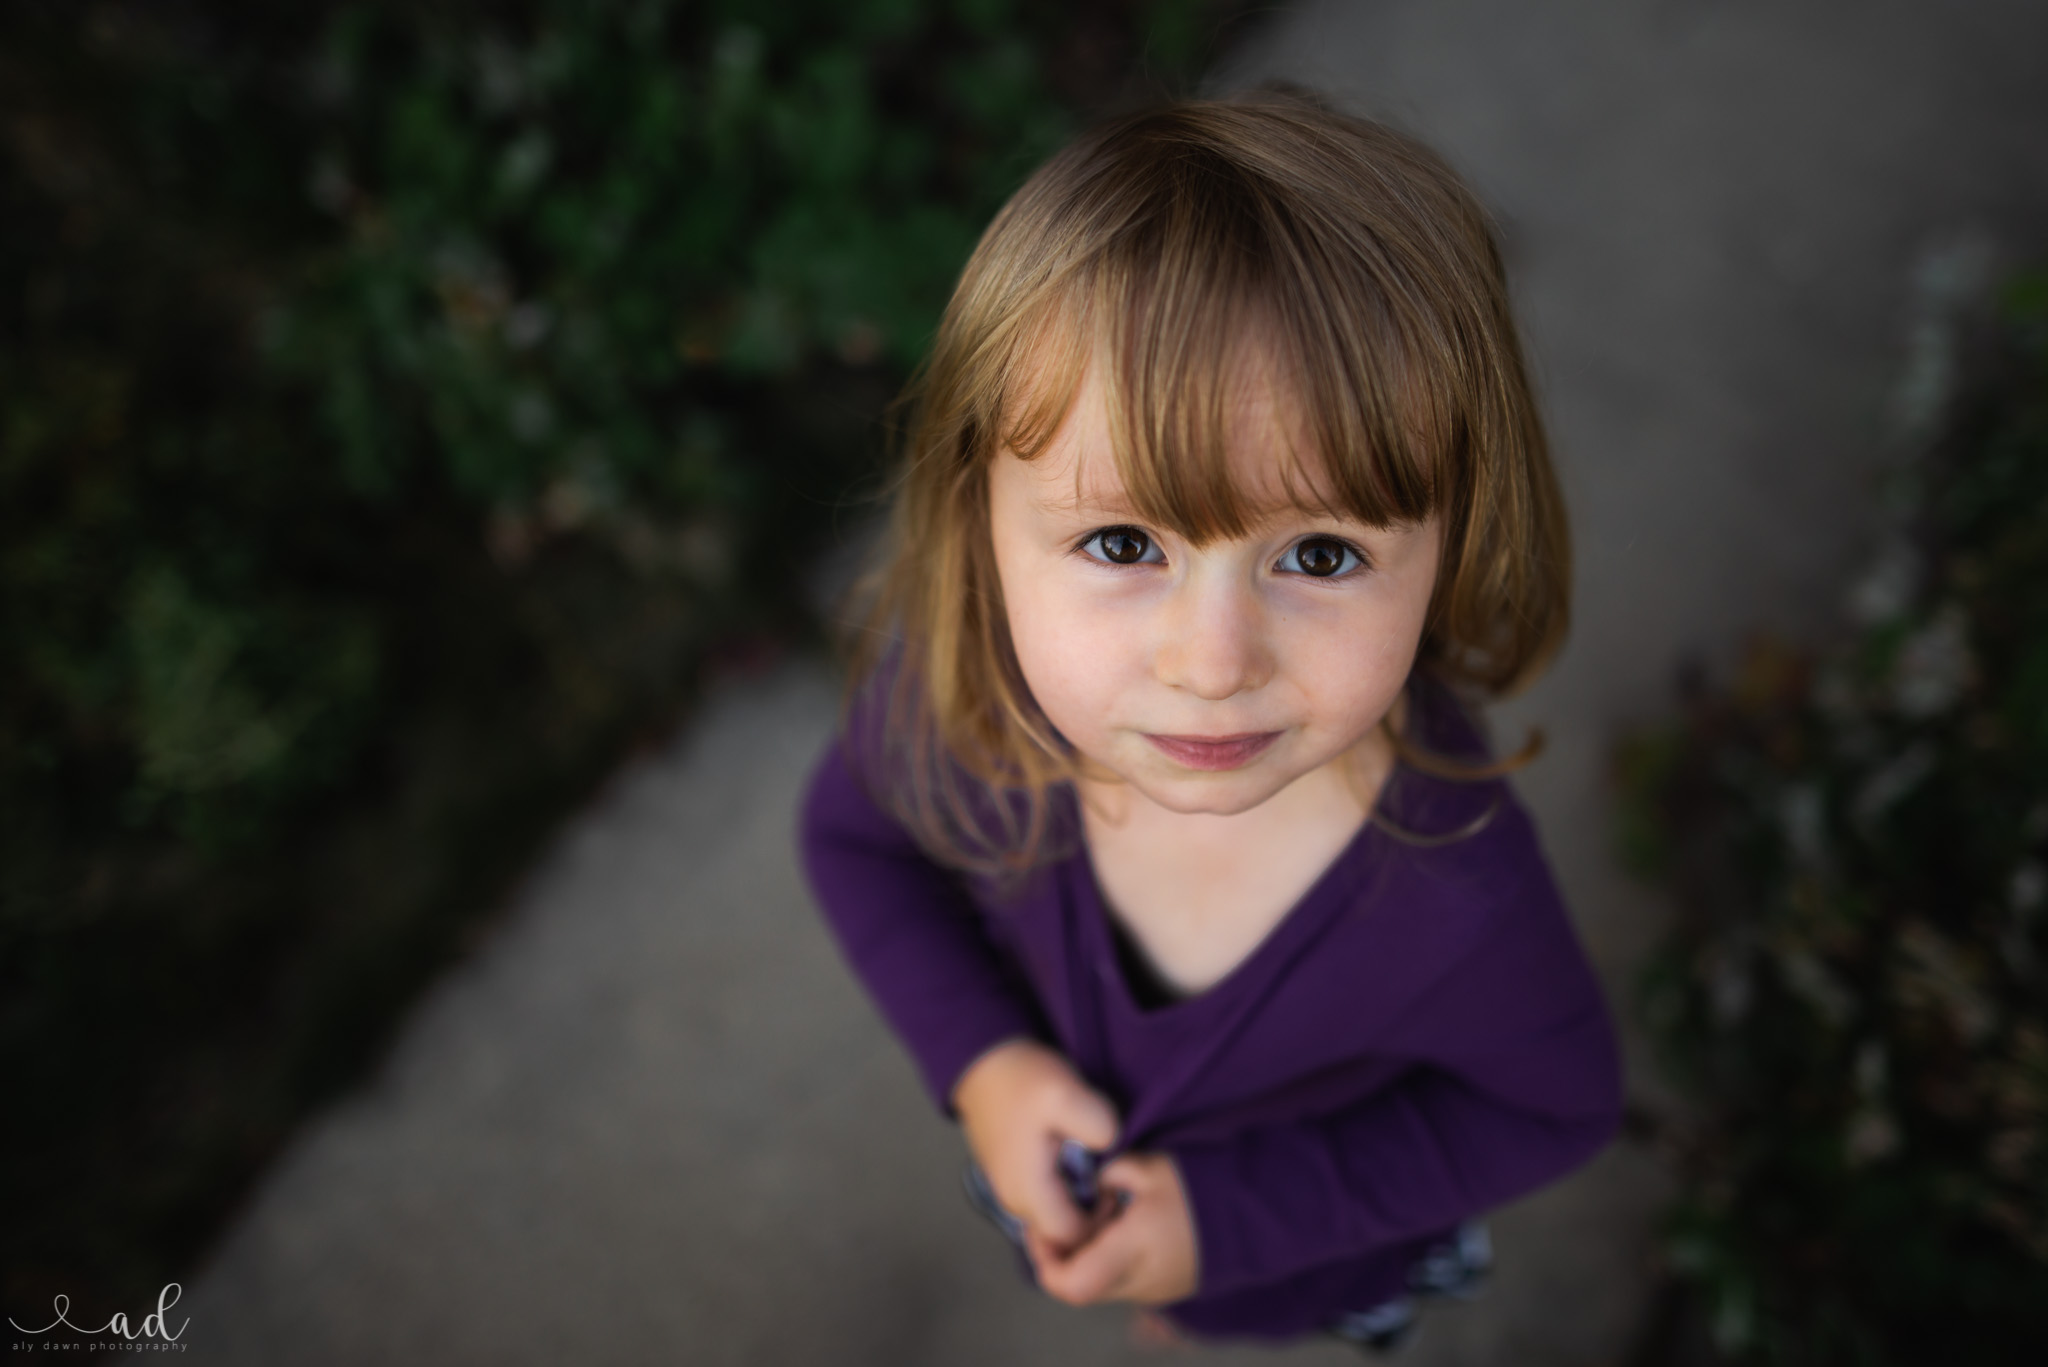 Aly Dawn Photography   How to Get Eye Contact From a Toddler